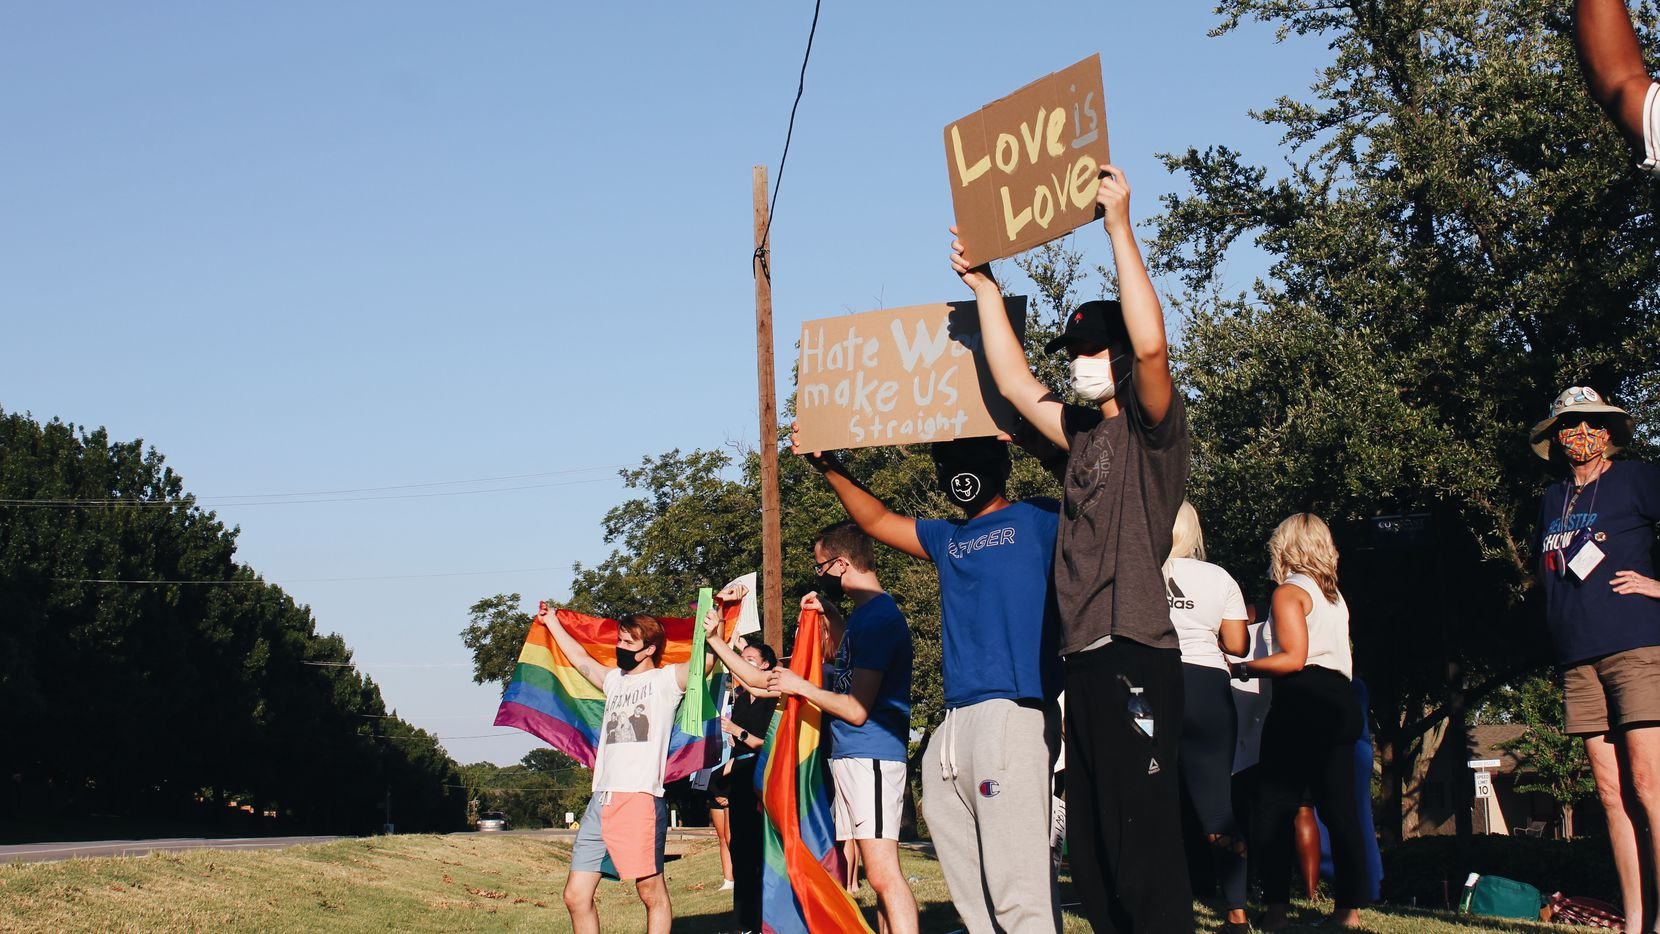 Protestors gather outside of Covenant Christian Academy in Colleyville on Aug. 20, 2020 to speak out against the school's stance on sexuality and the dismissal of Devin Bryant, a gay student.